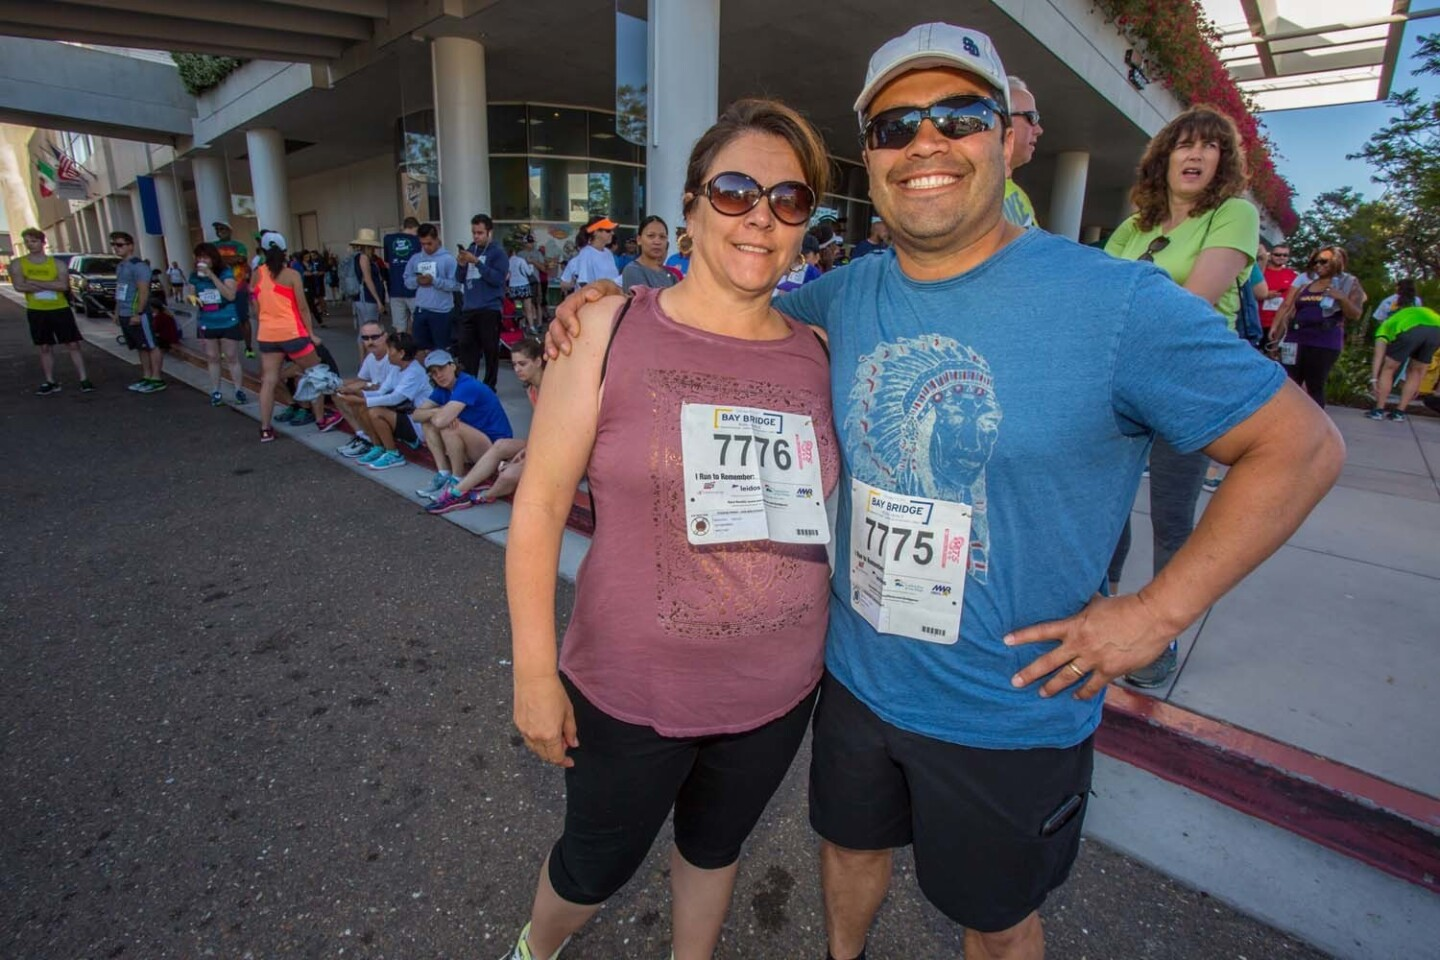 The annual Navy-hosted Bay Bridge run, whose profits benefit Quality of Life programs for both active and retired military members and their families, returned to San Diego on Sunday, May 21, 2017.